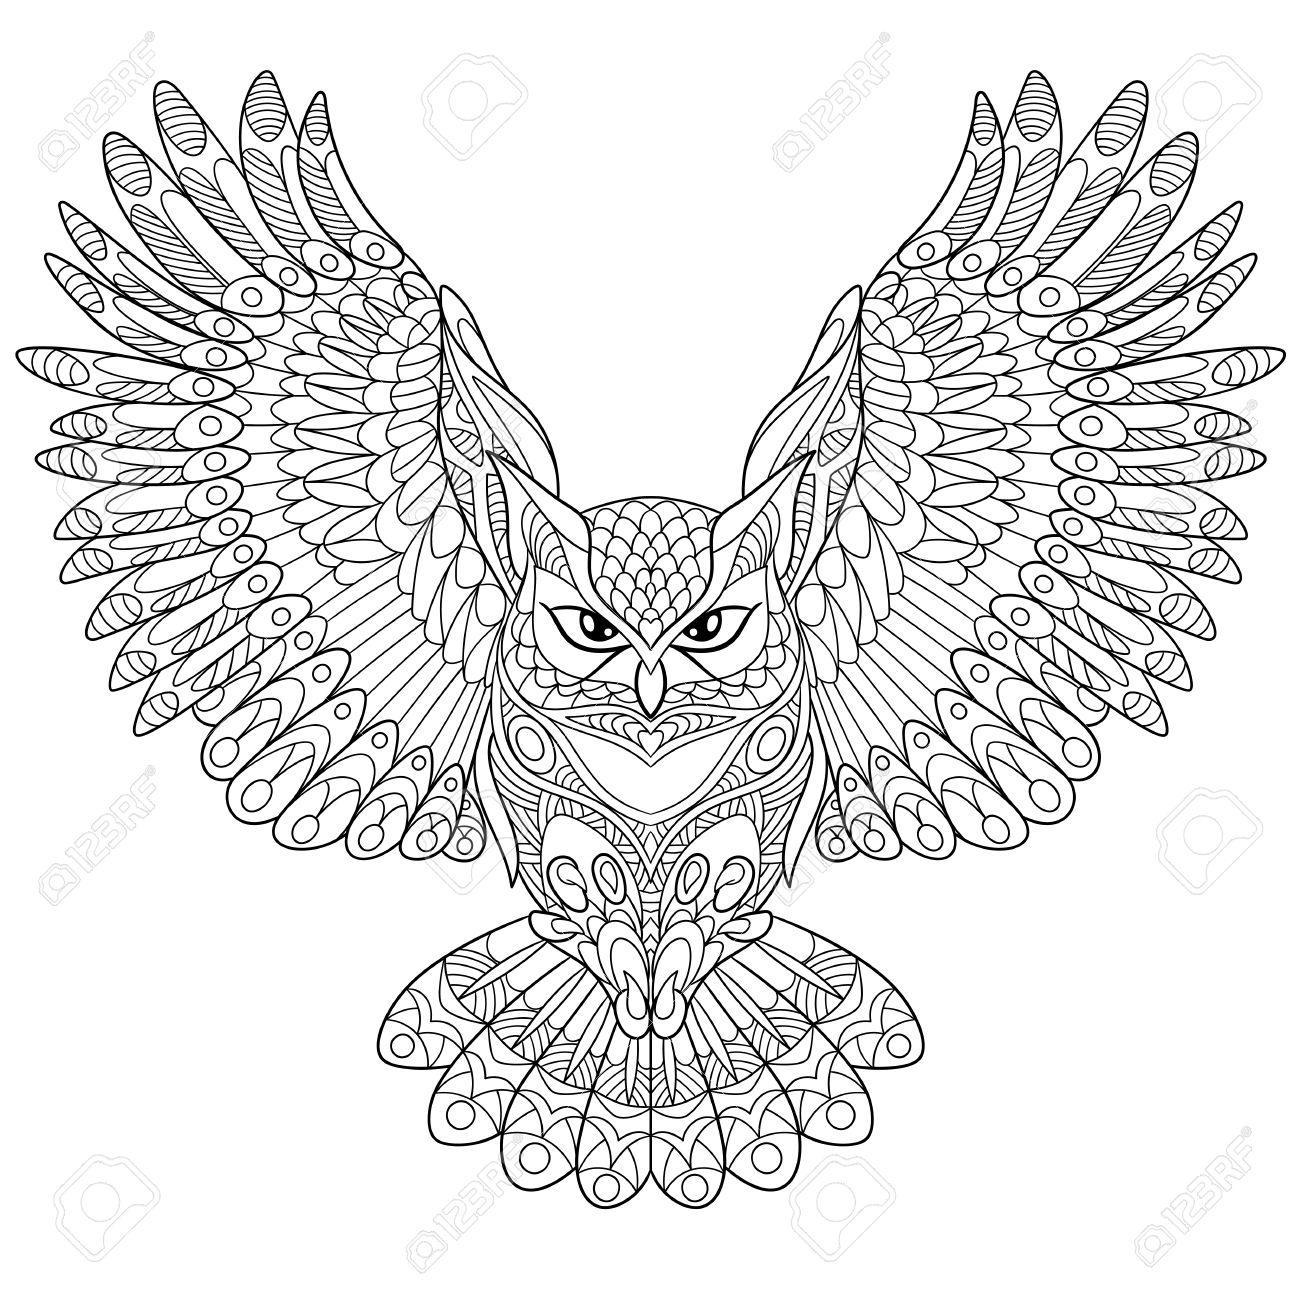 279 owl swirl stock illustrations cliparts and royalty free owl